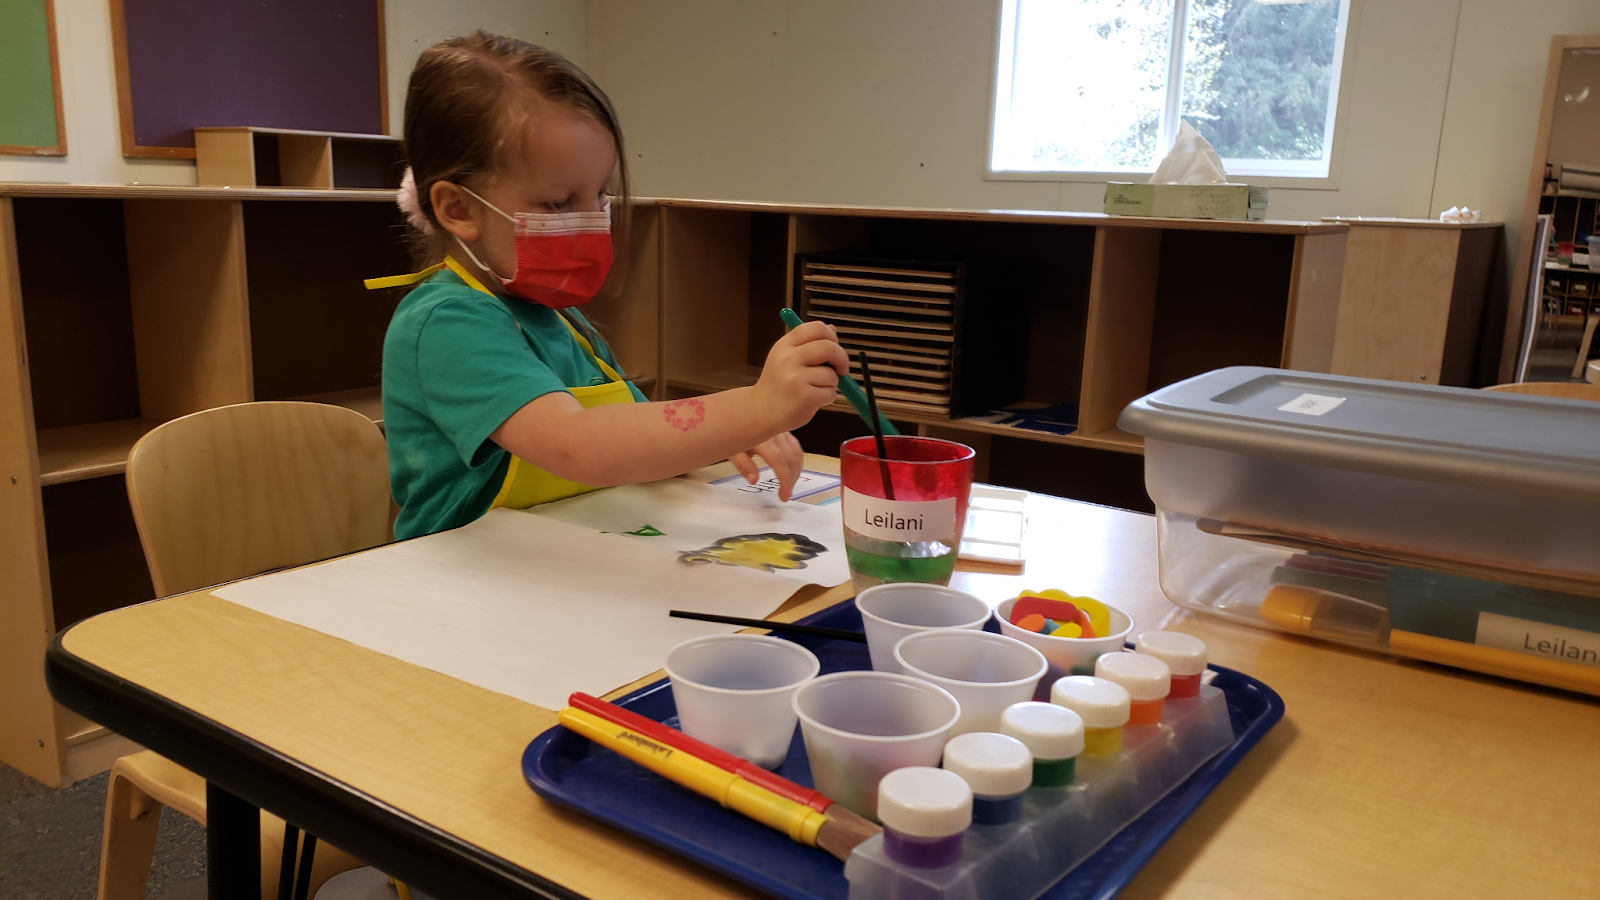 Child painting with water colors